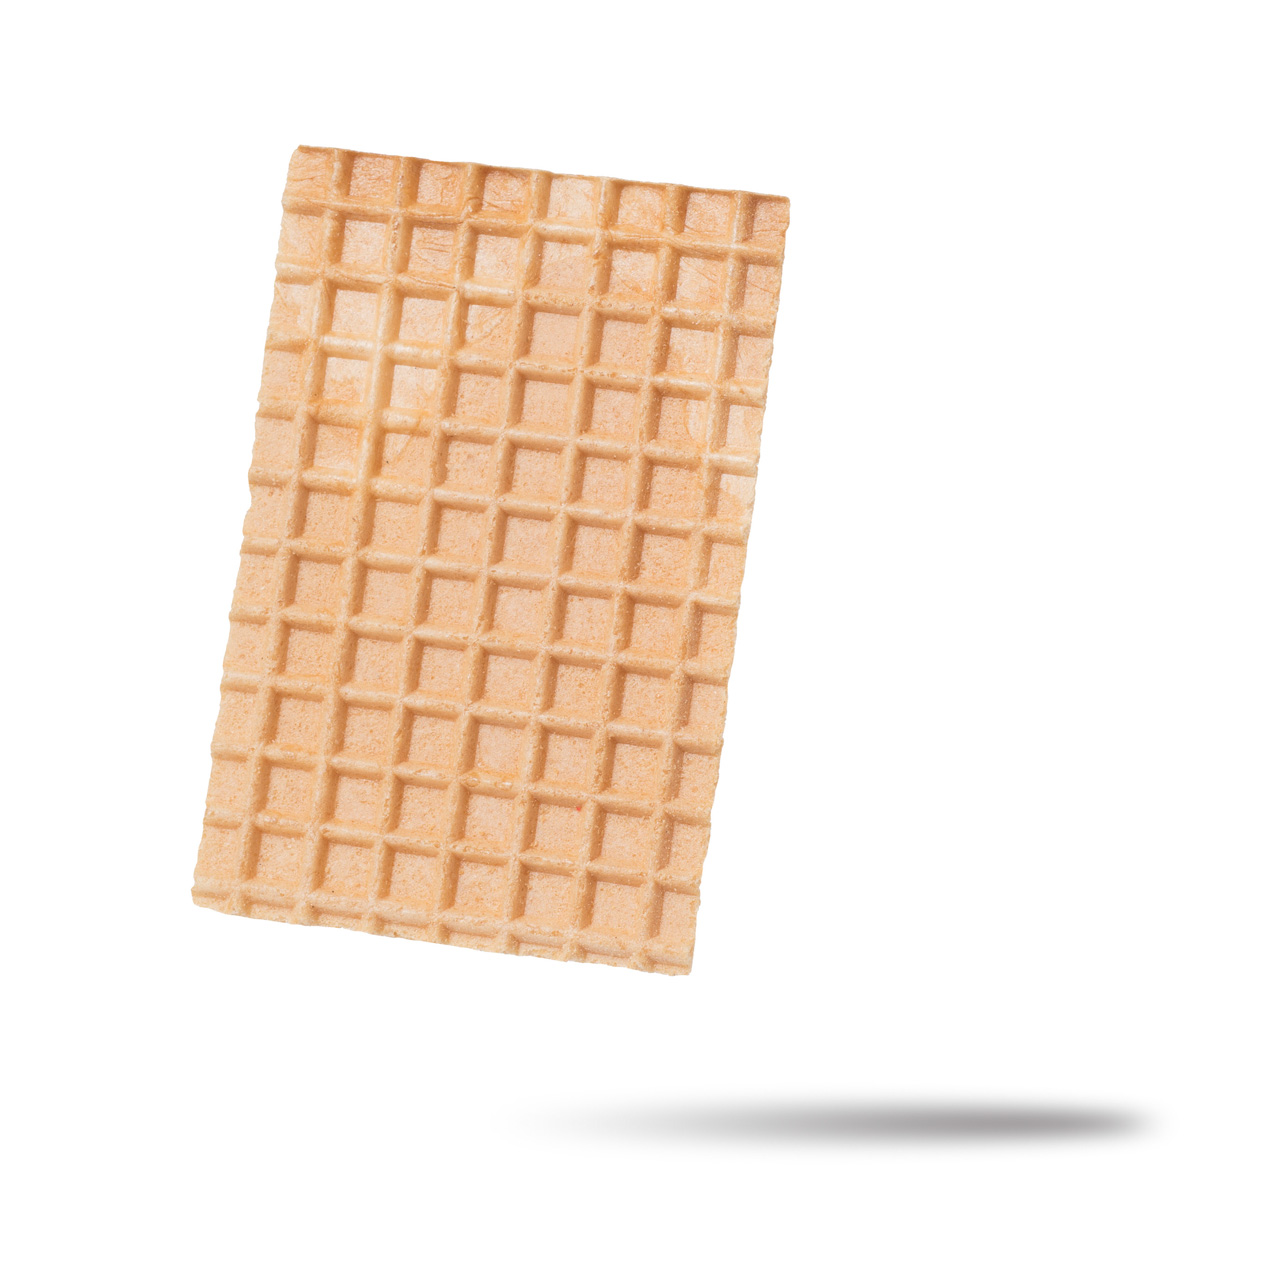 Squared wafers